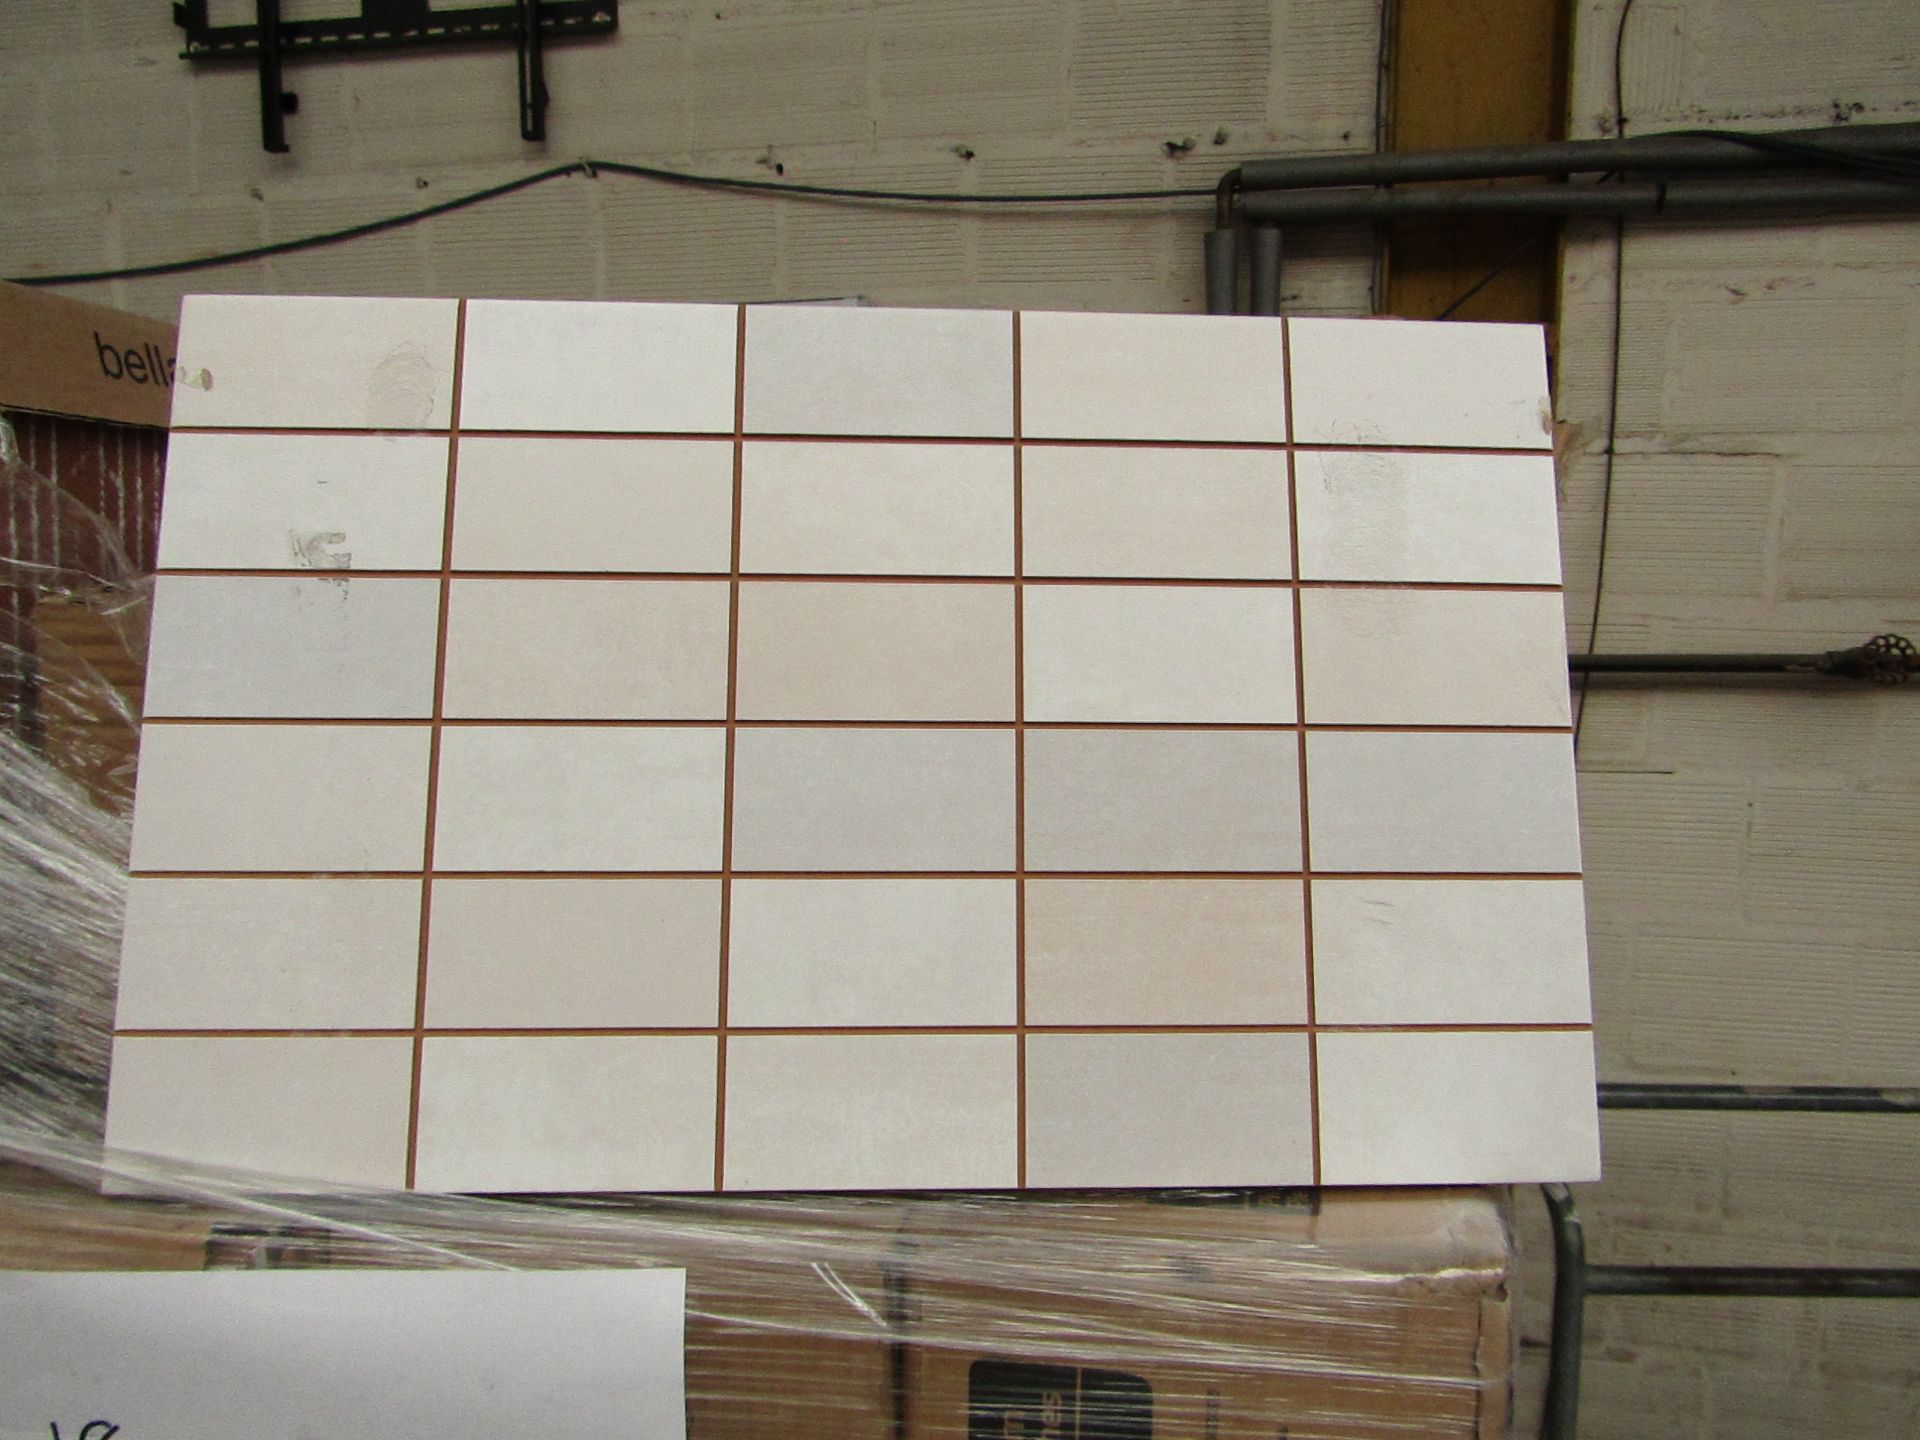 Lotto 393 - 10x packs of 17 Bella Vista Freya Cream mosaic tiles 400x250, RRP £16.66 giving a total lot RRP of